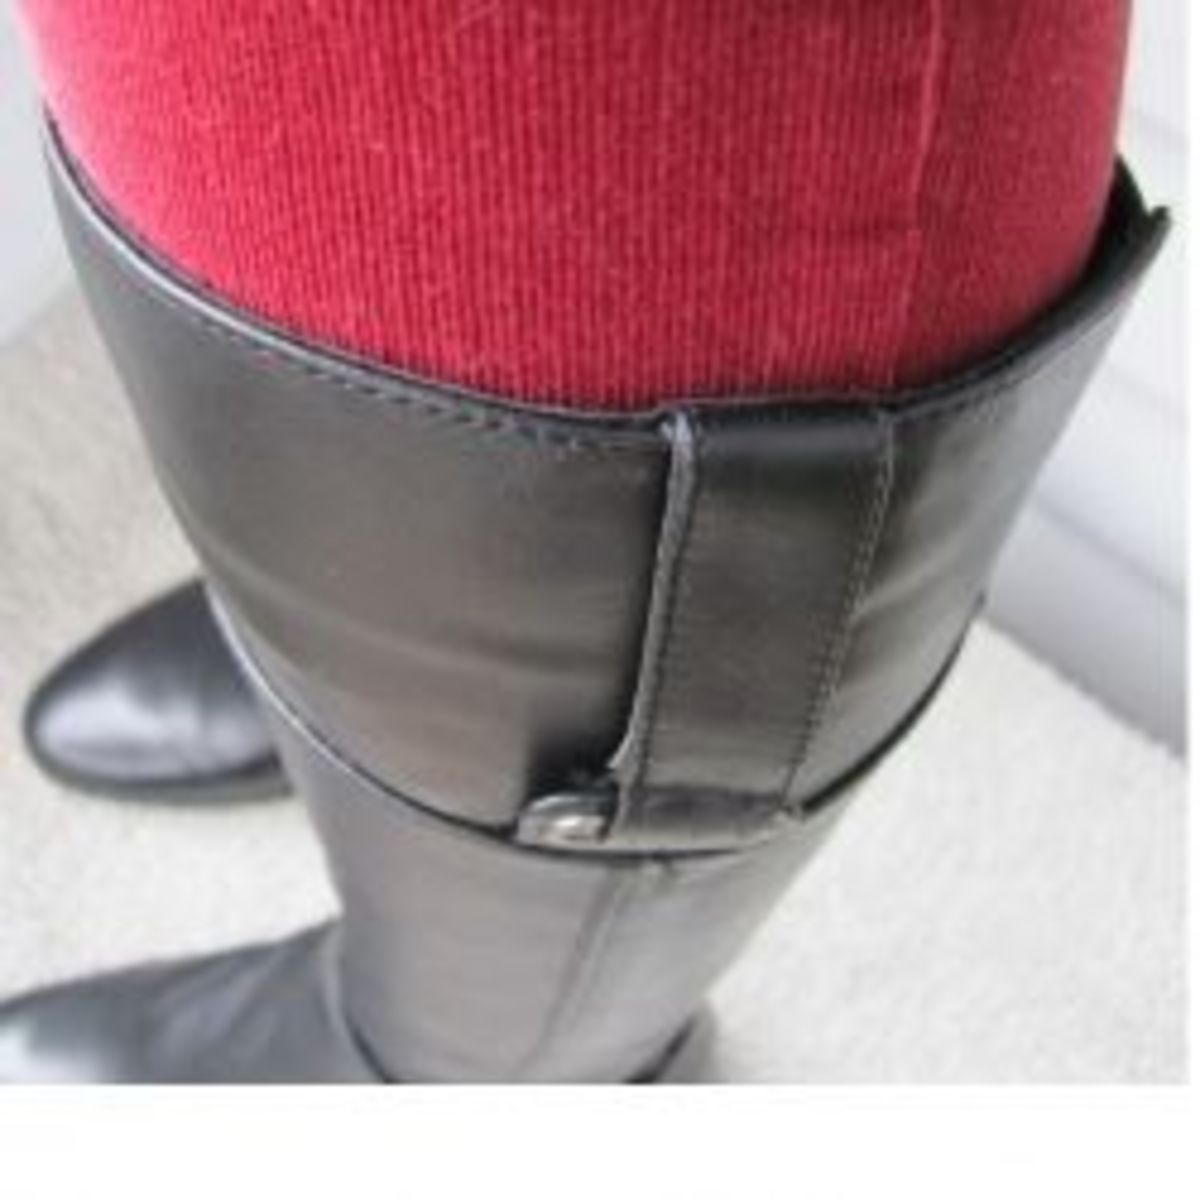 """Last year's Solemani Gabi -- from the label's """"Slim Calf Collection"""" -- was one of the snuggest-fitting boots I've tried. Will this year's collection measure up?"""